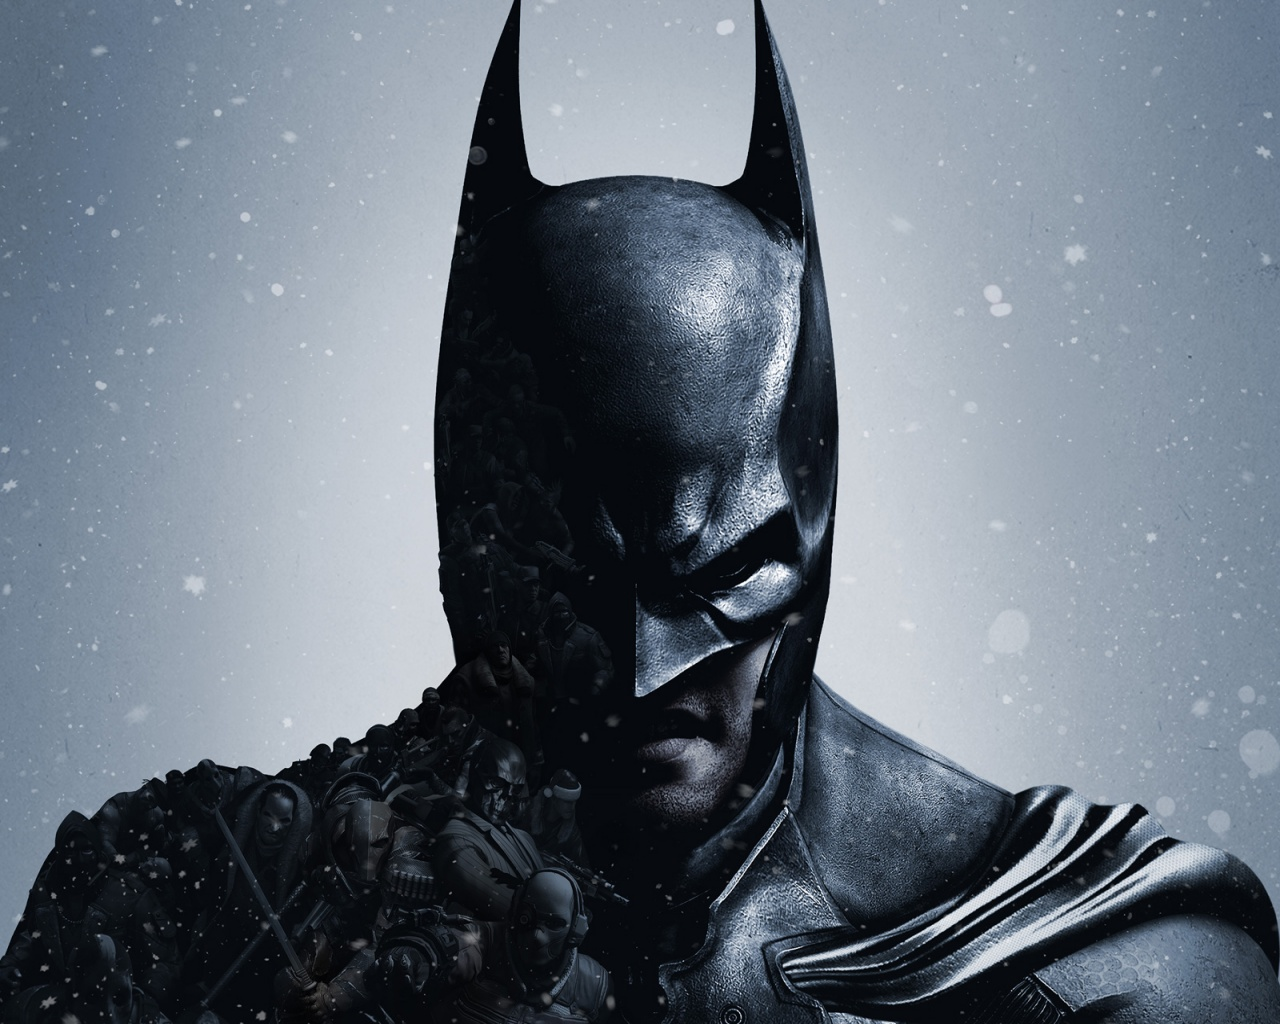 Batman Arkham Origins Wallpapers in jpg format for free download 28f92f31694